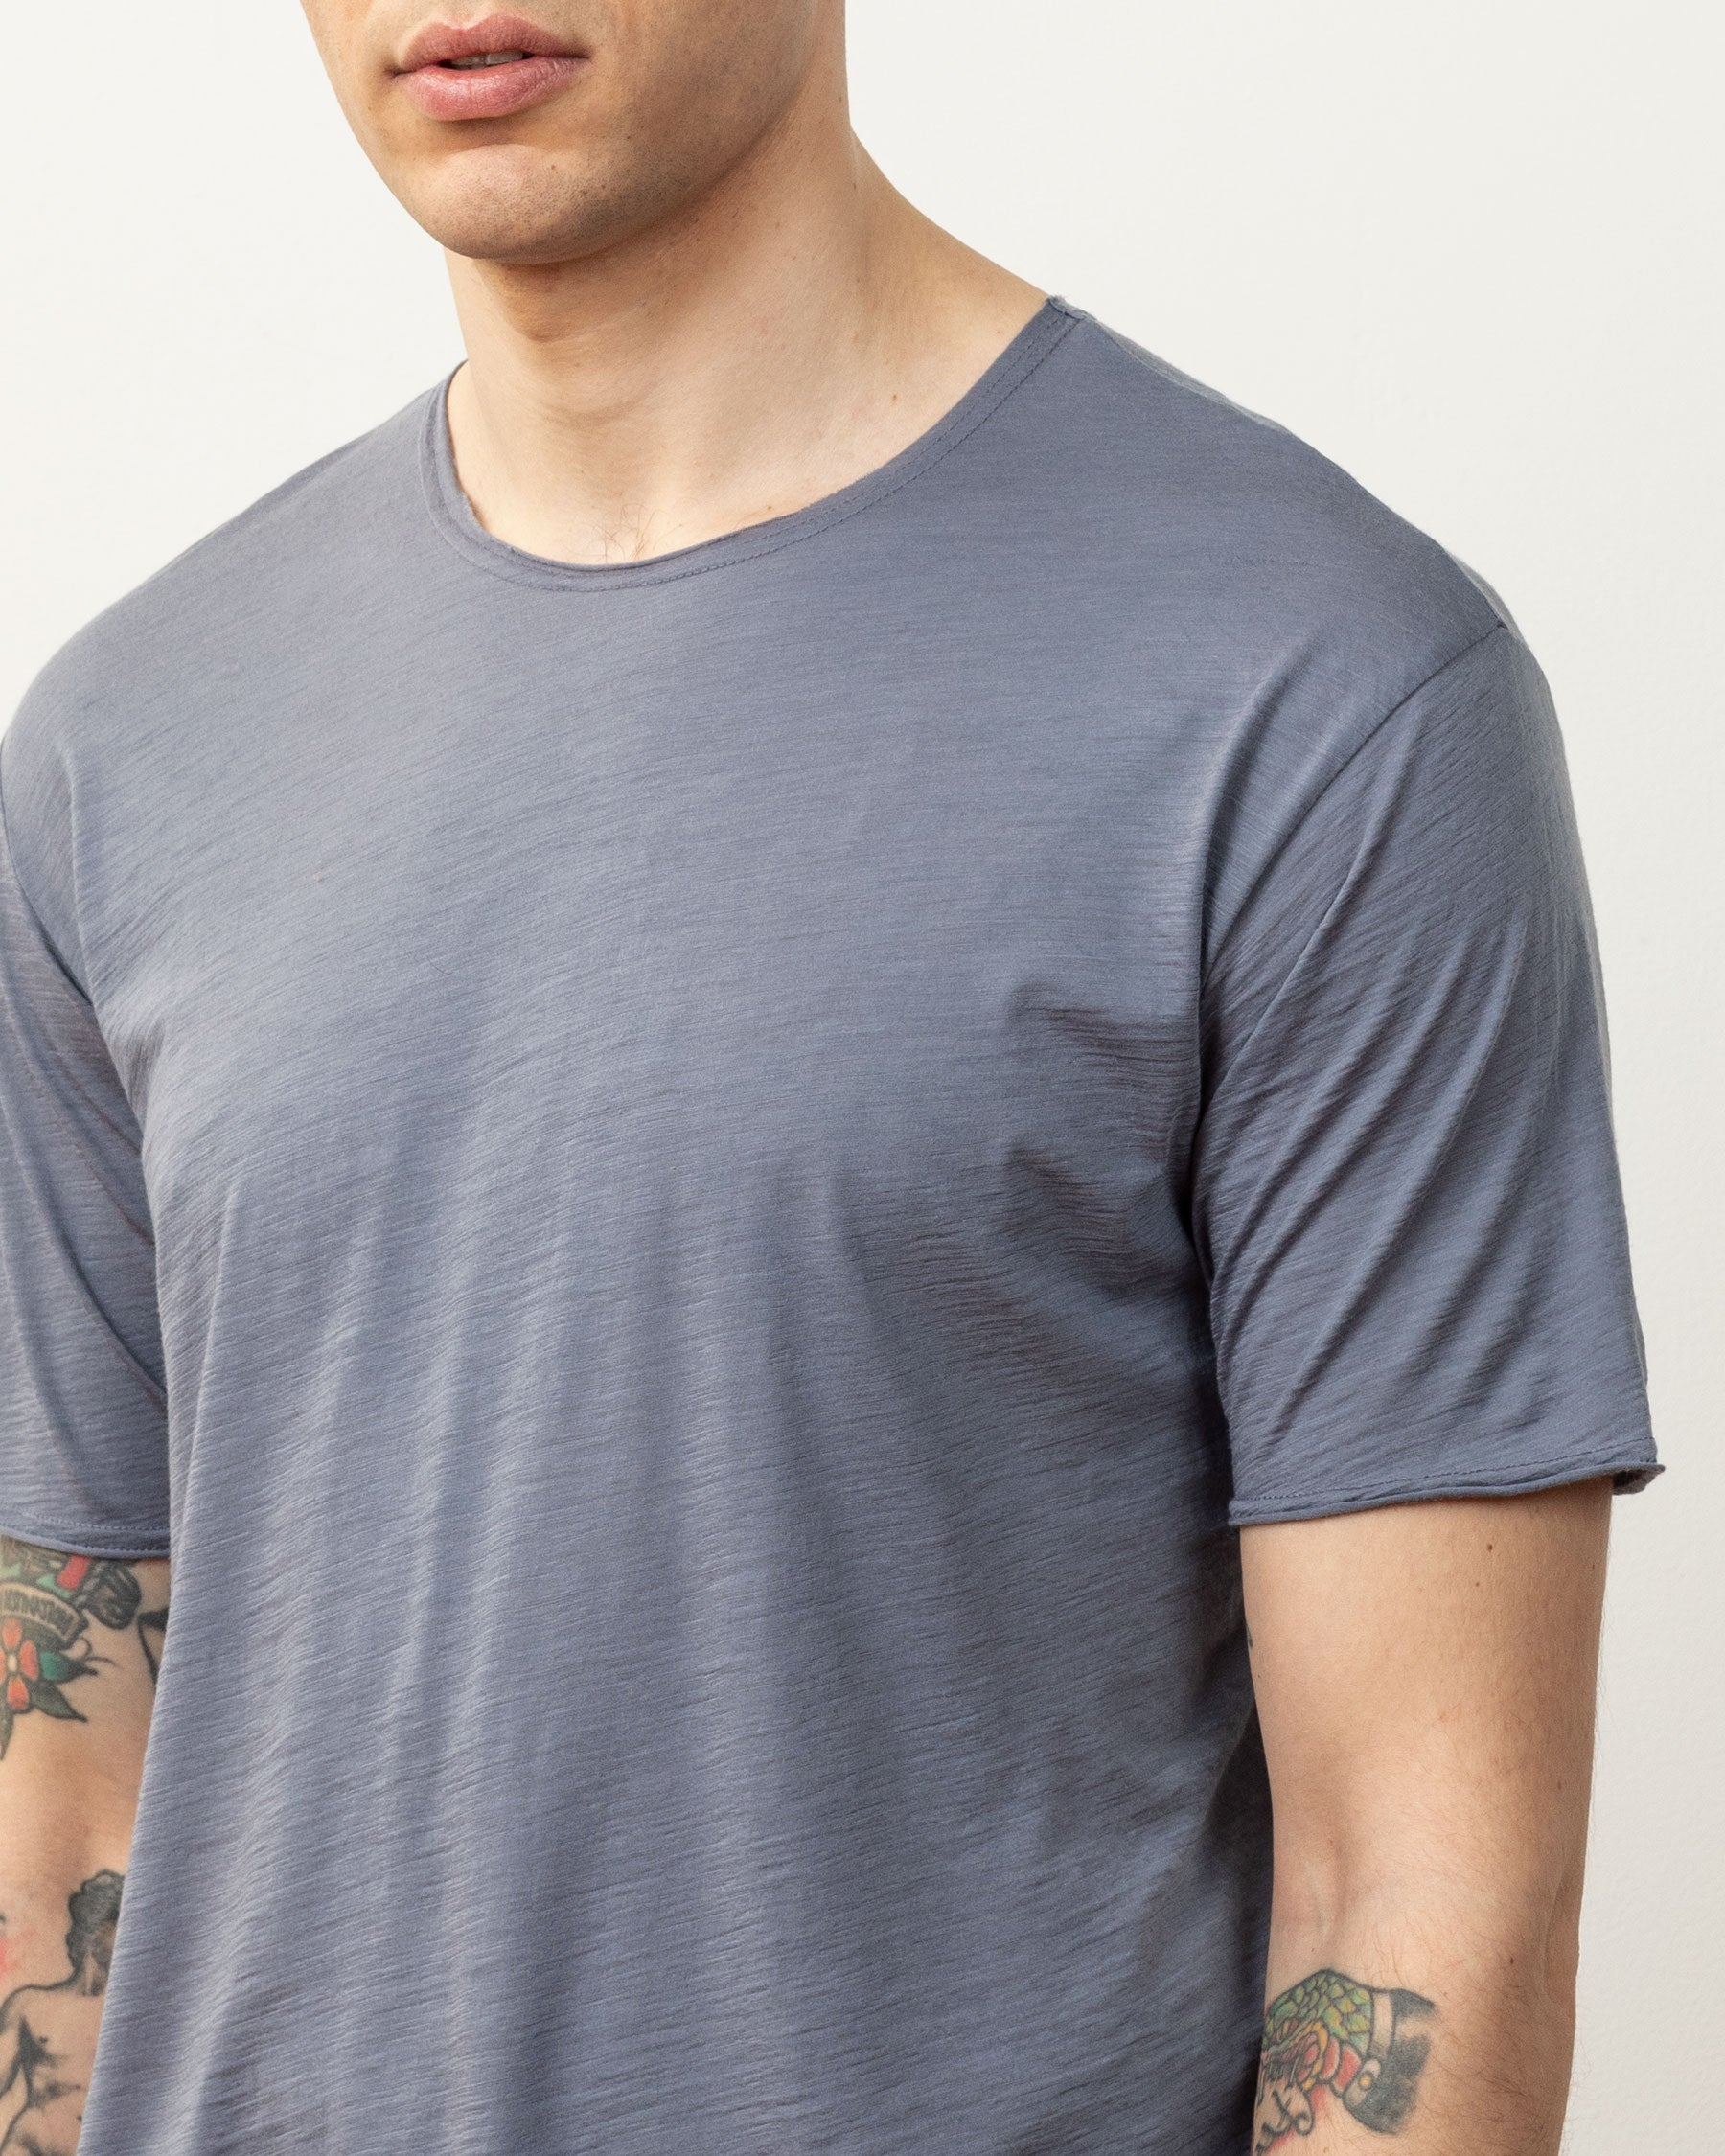 Cropped detail image of the Dreamweight Rawcut Shortsleeve collar